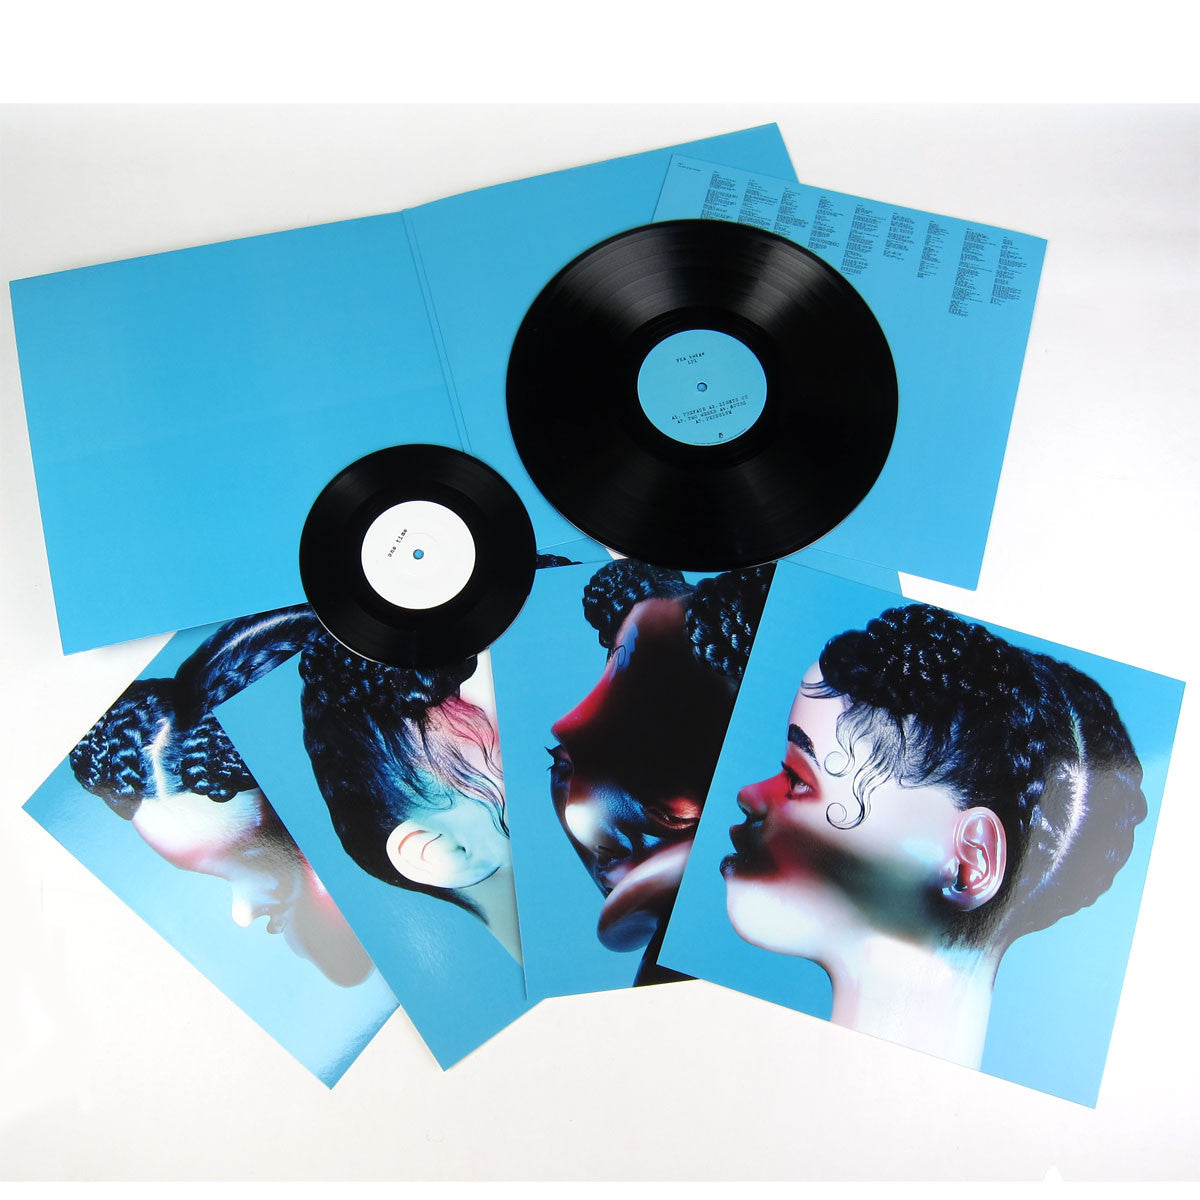 "FKA Twigs: LP 1 (Free MP3) Deluxe Vinyl LP+7"" laydown"